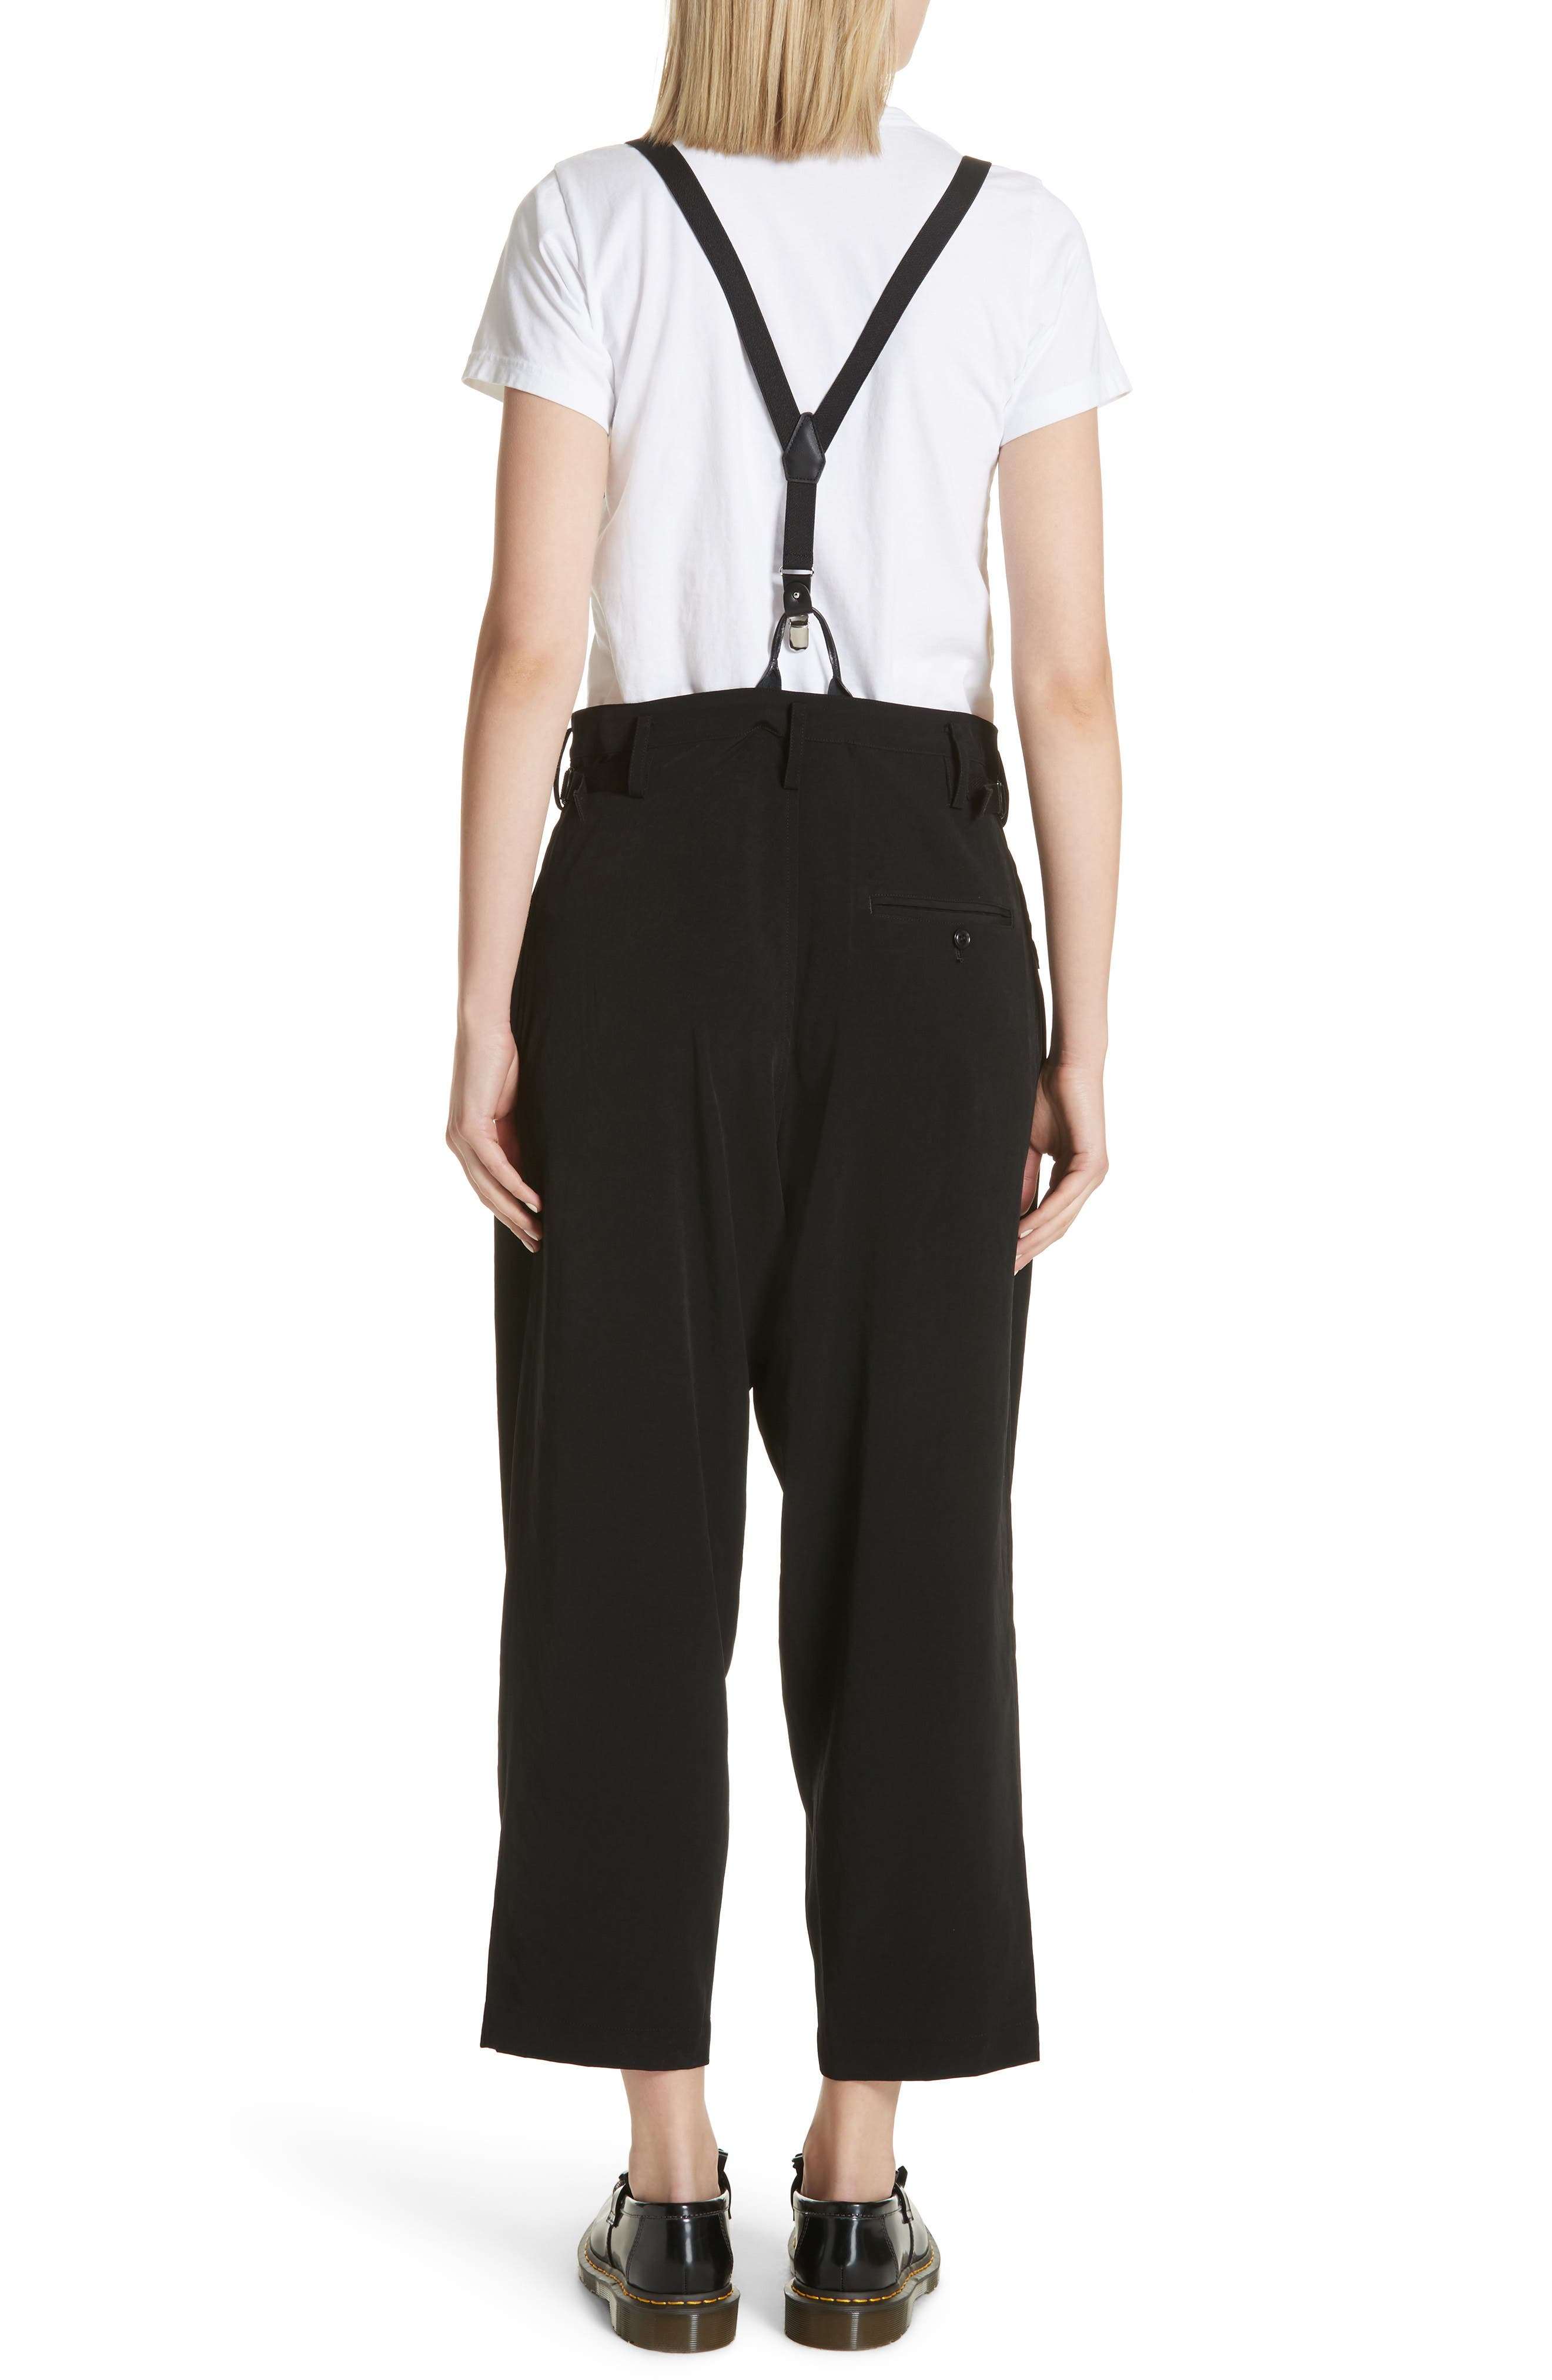 Pants with Suspenders,                             Alternate thumbnail 2, color,                             Black